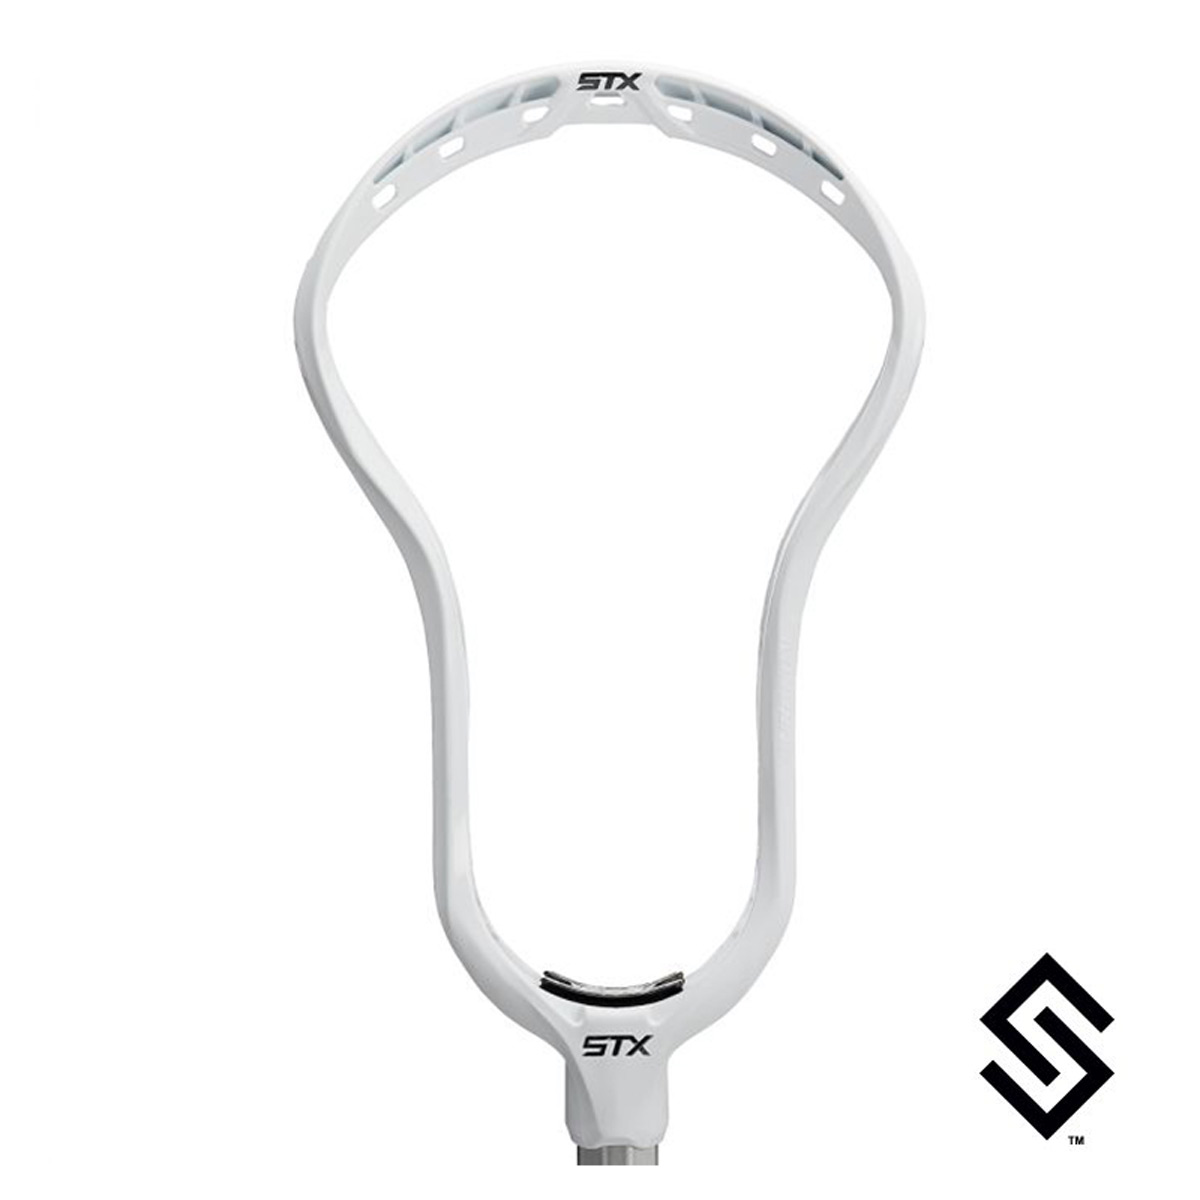 STX Surgeon 900 Lacrosse Head